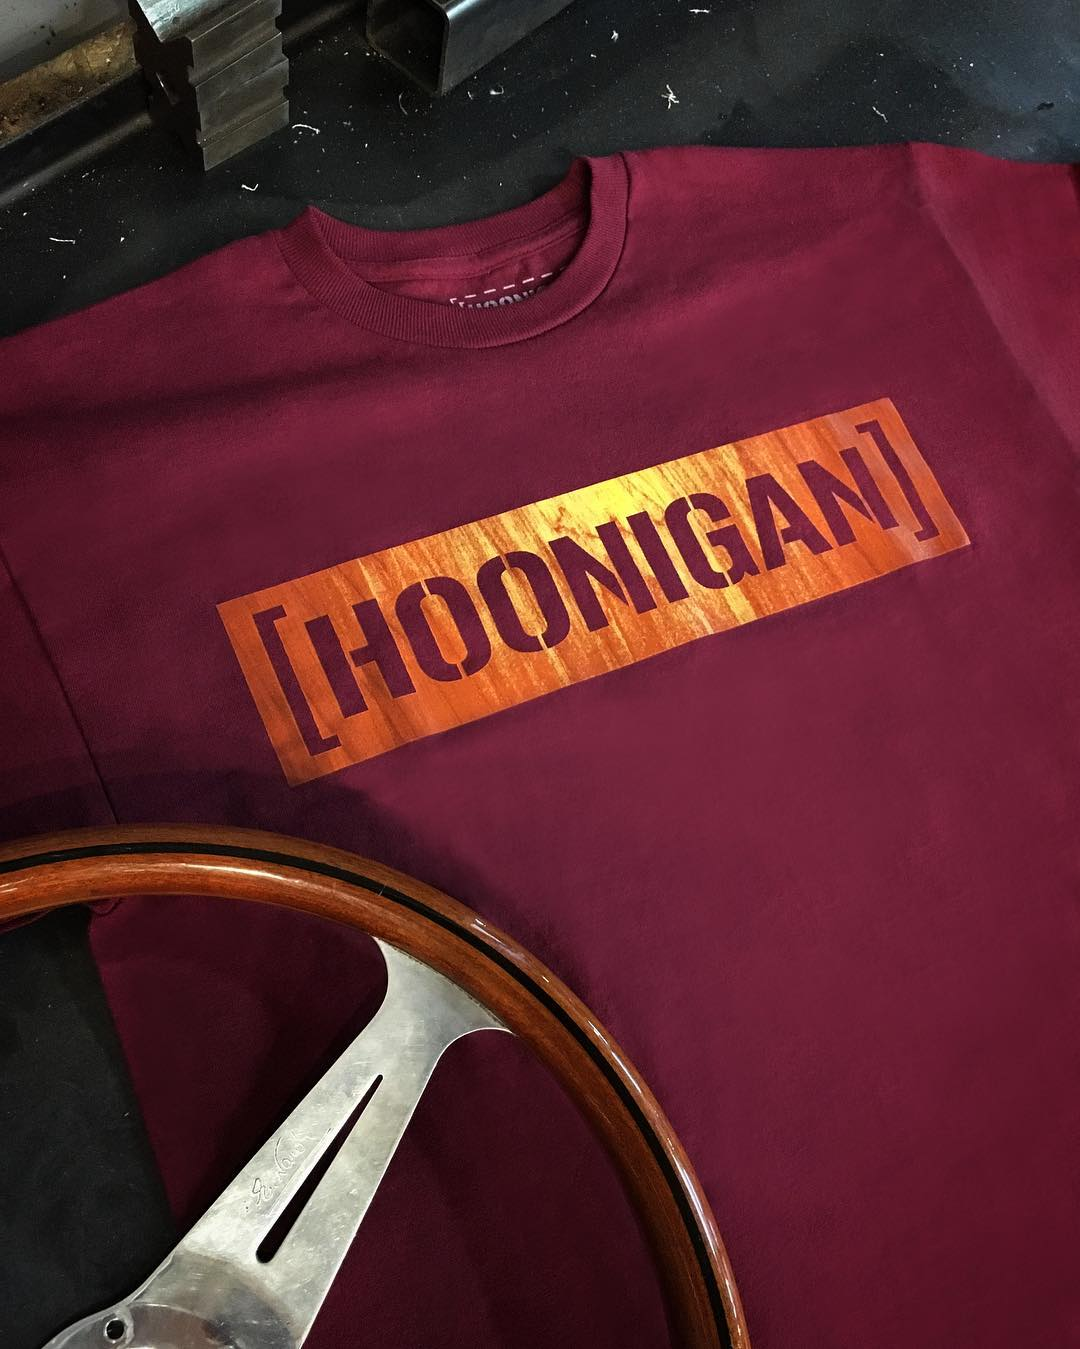 The Wood Grain Censor Bar tee. Inspired by classic wood steering wheels from the past. #grippinggrain #hooniganDOTcom